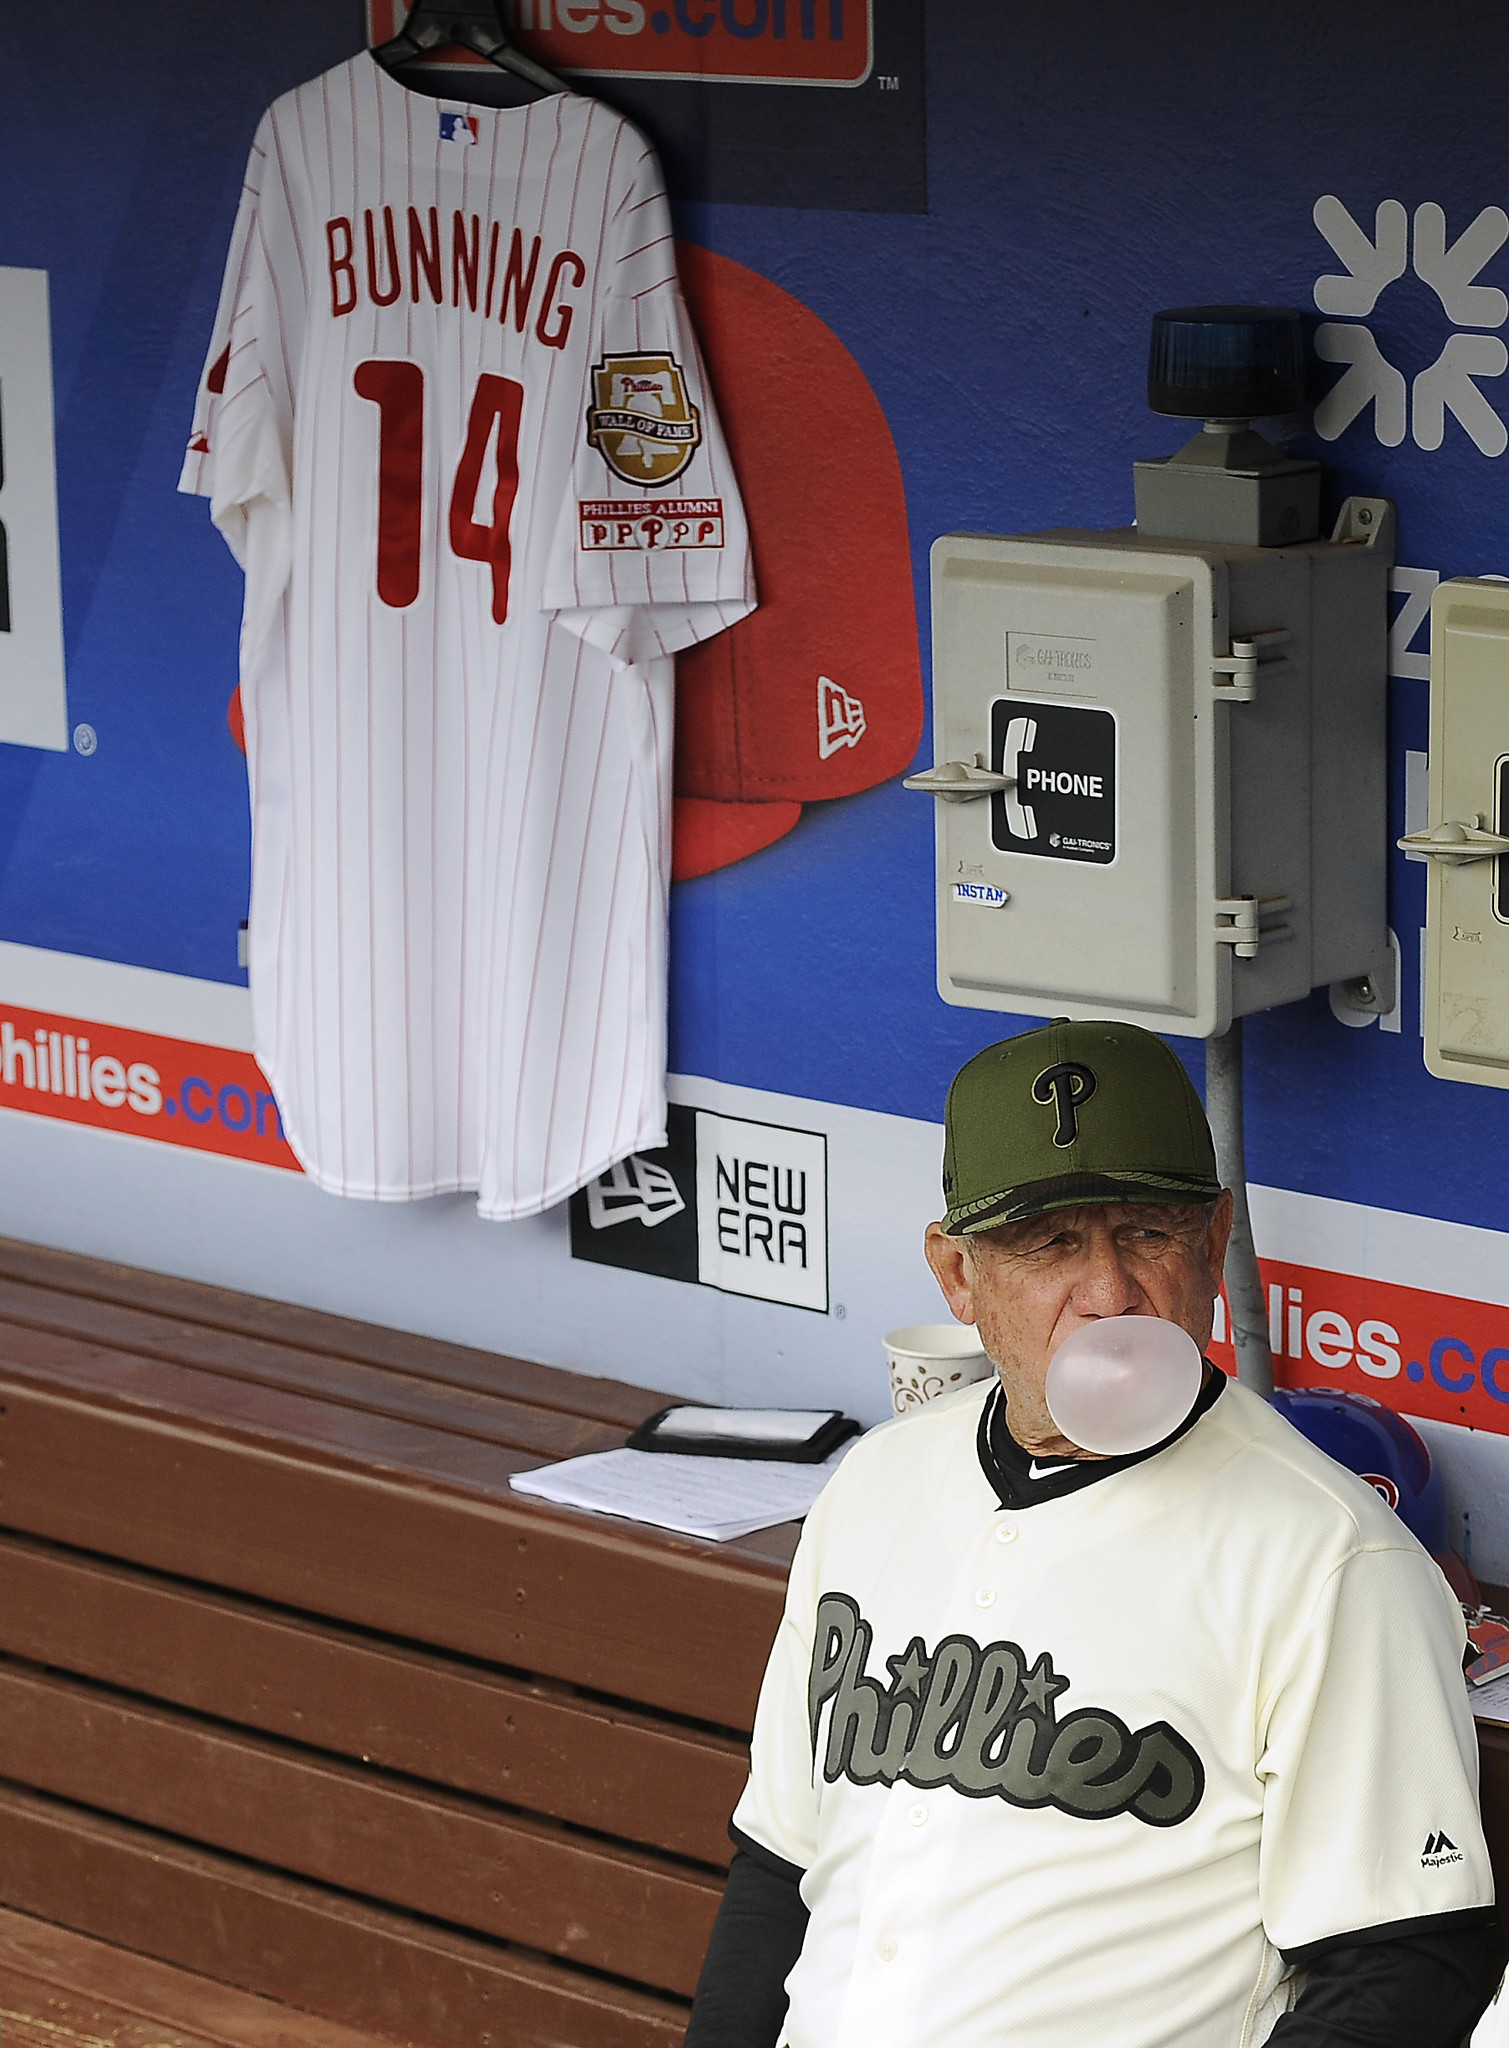 Mc-what-they-re-saying-about-phillies-hall-of-famer-and-former-u-s-senator-jim-bunning-20170528